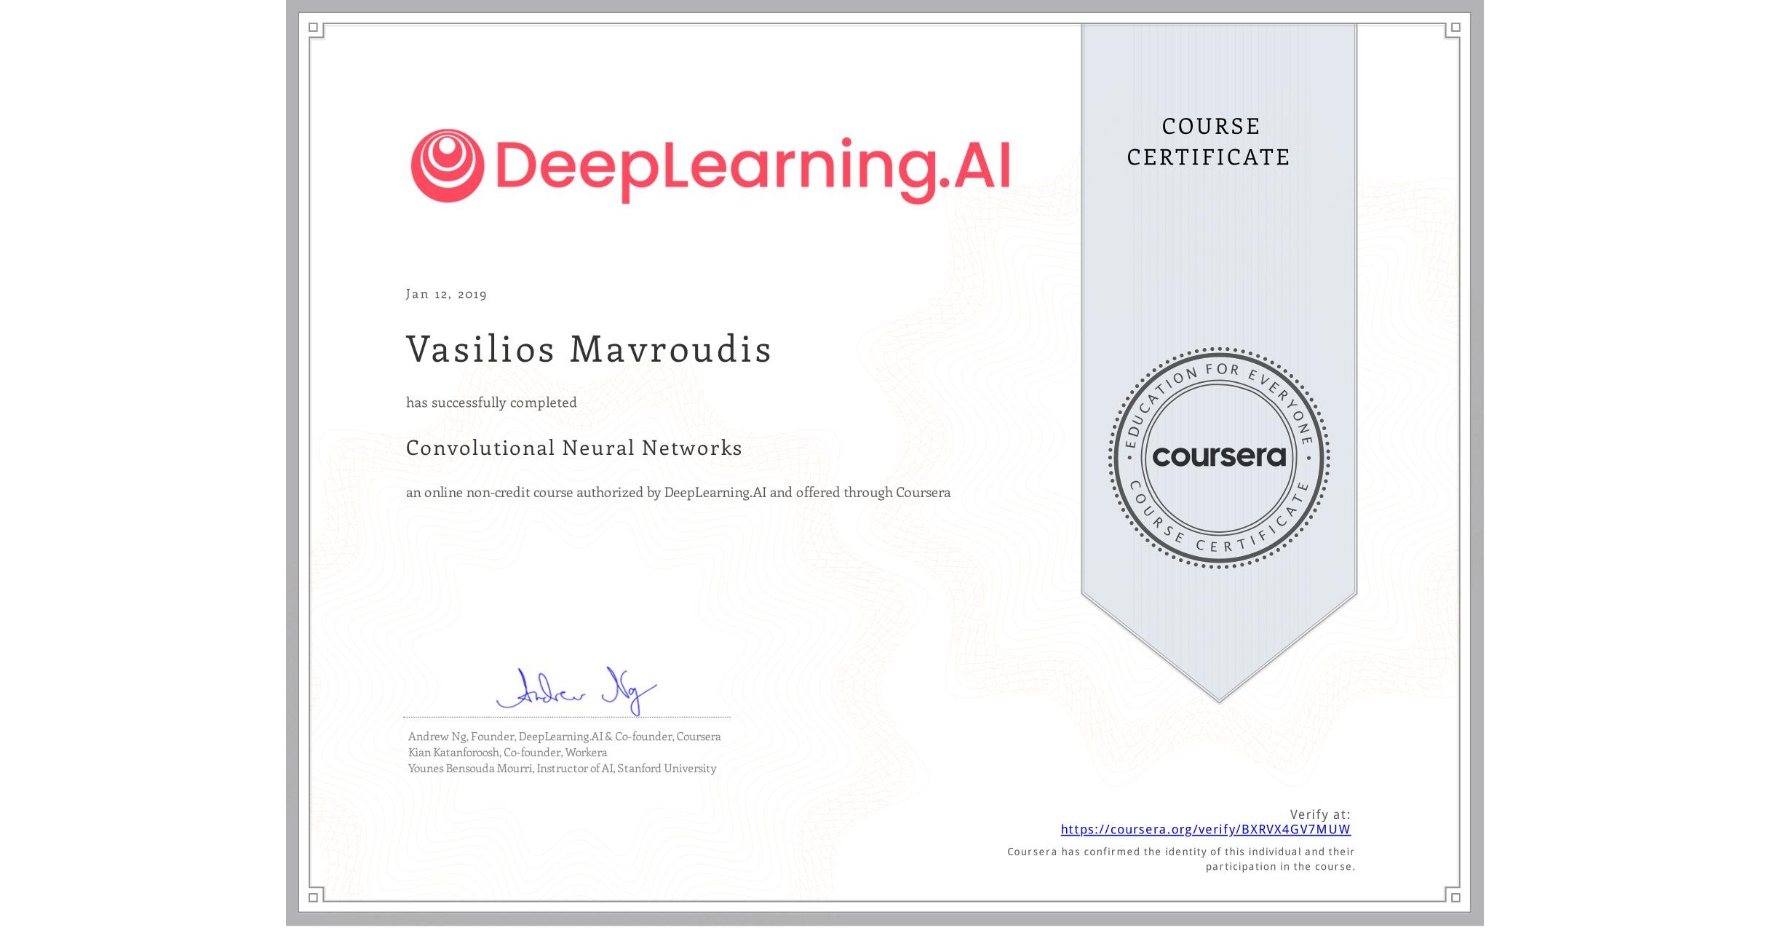 View certificate for Vasilios Mavroudis, Convolutional Neural Networks, an online non-credit course authorized by DeepLearning.AI and offered through Coursera